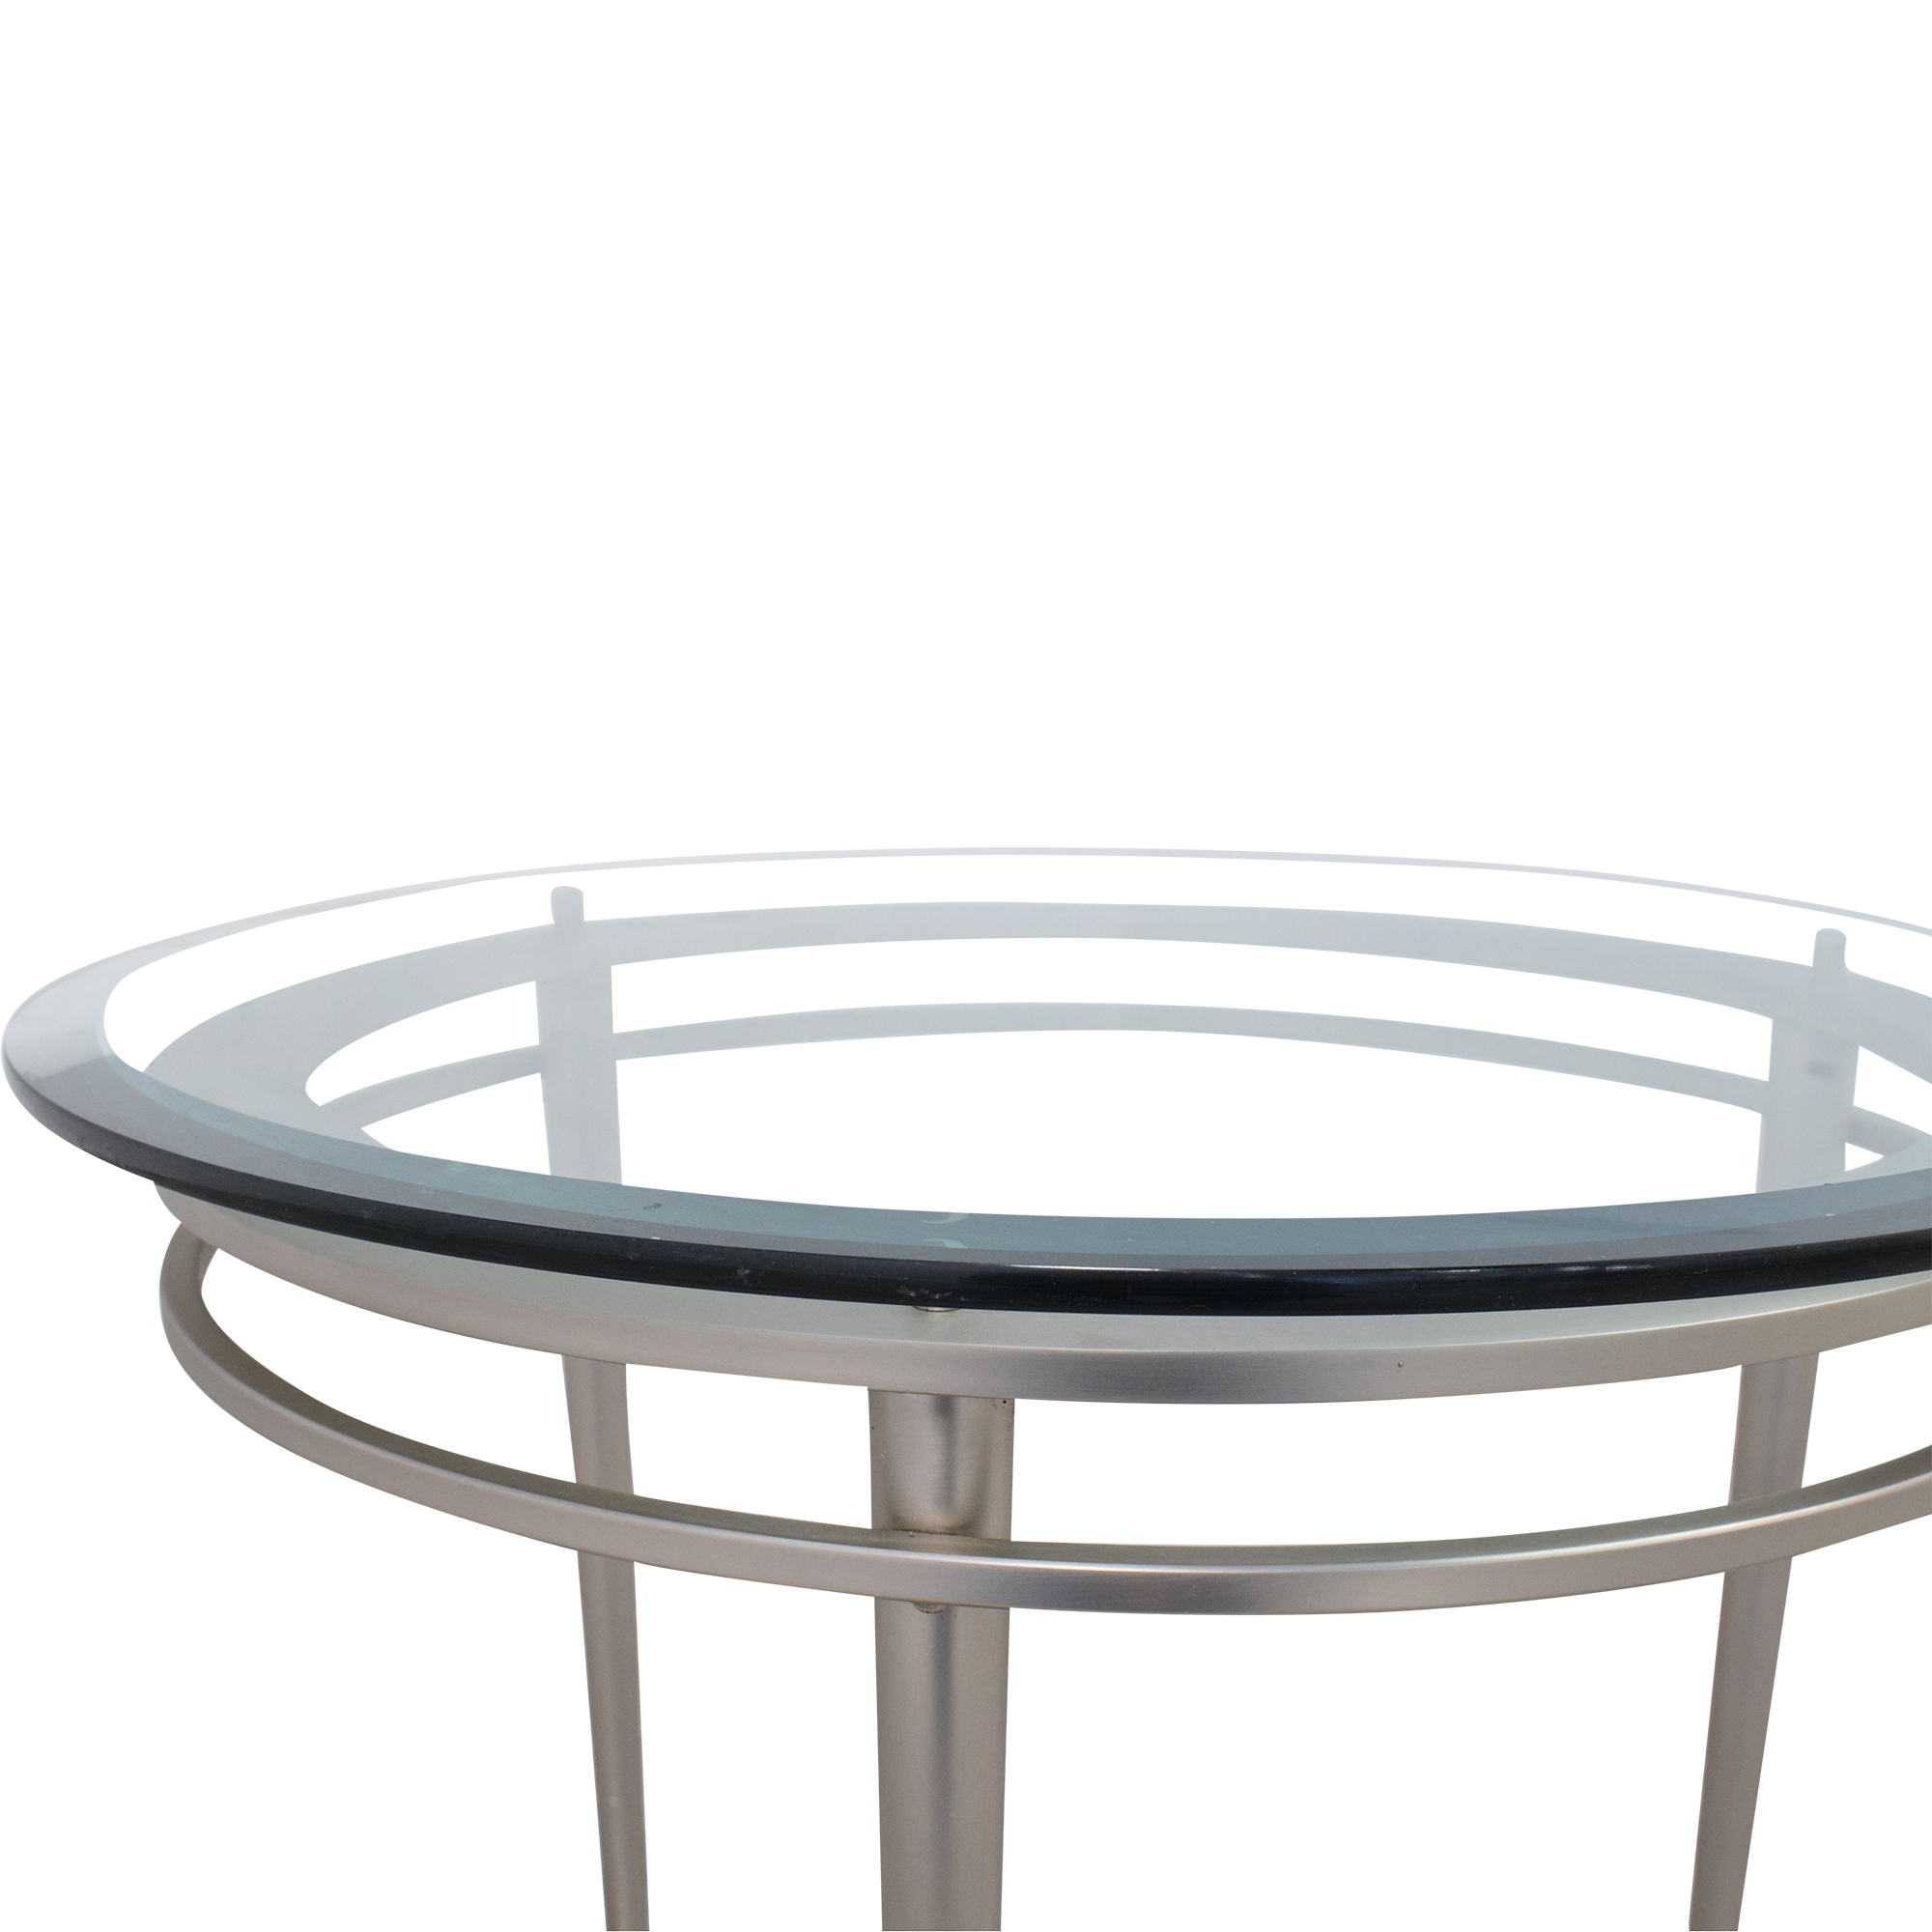 Ethan Allen Ethan Allen Round Top Side Table silver